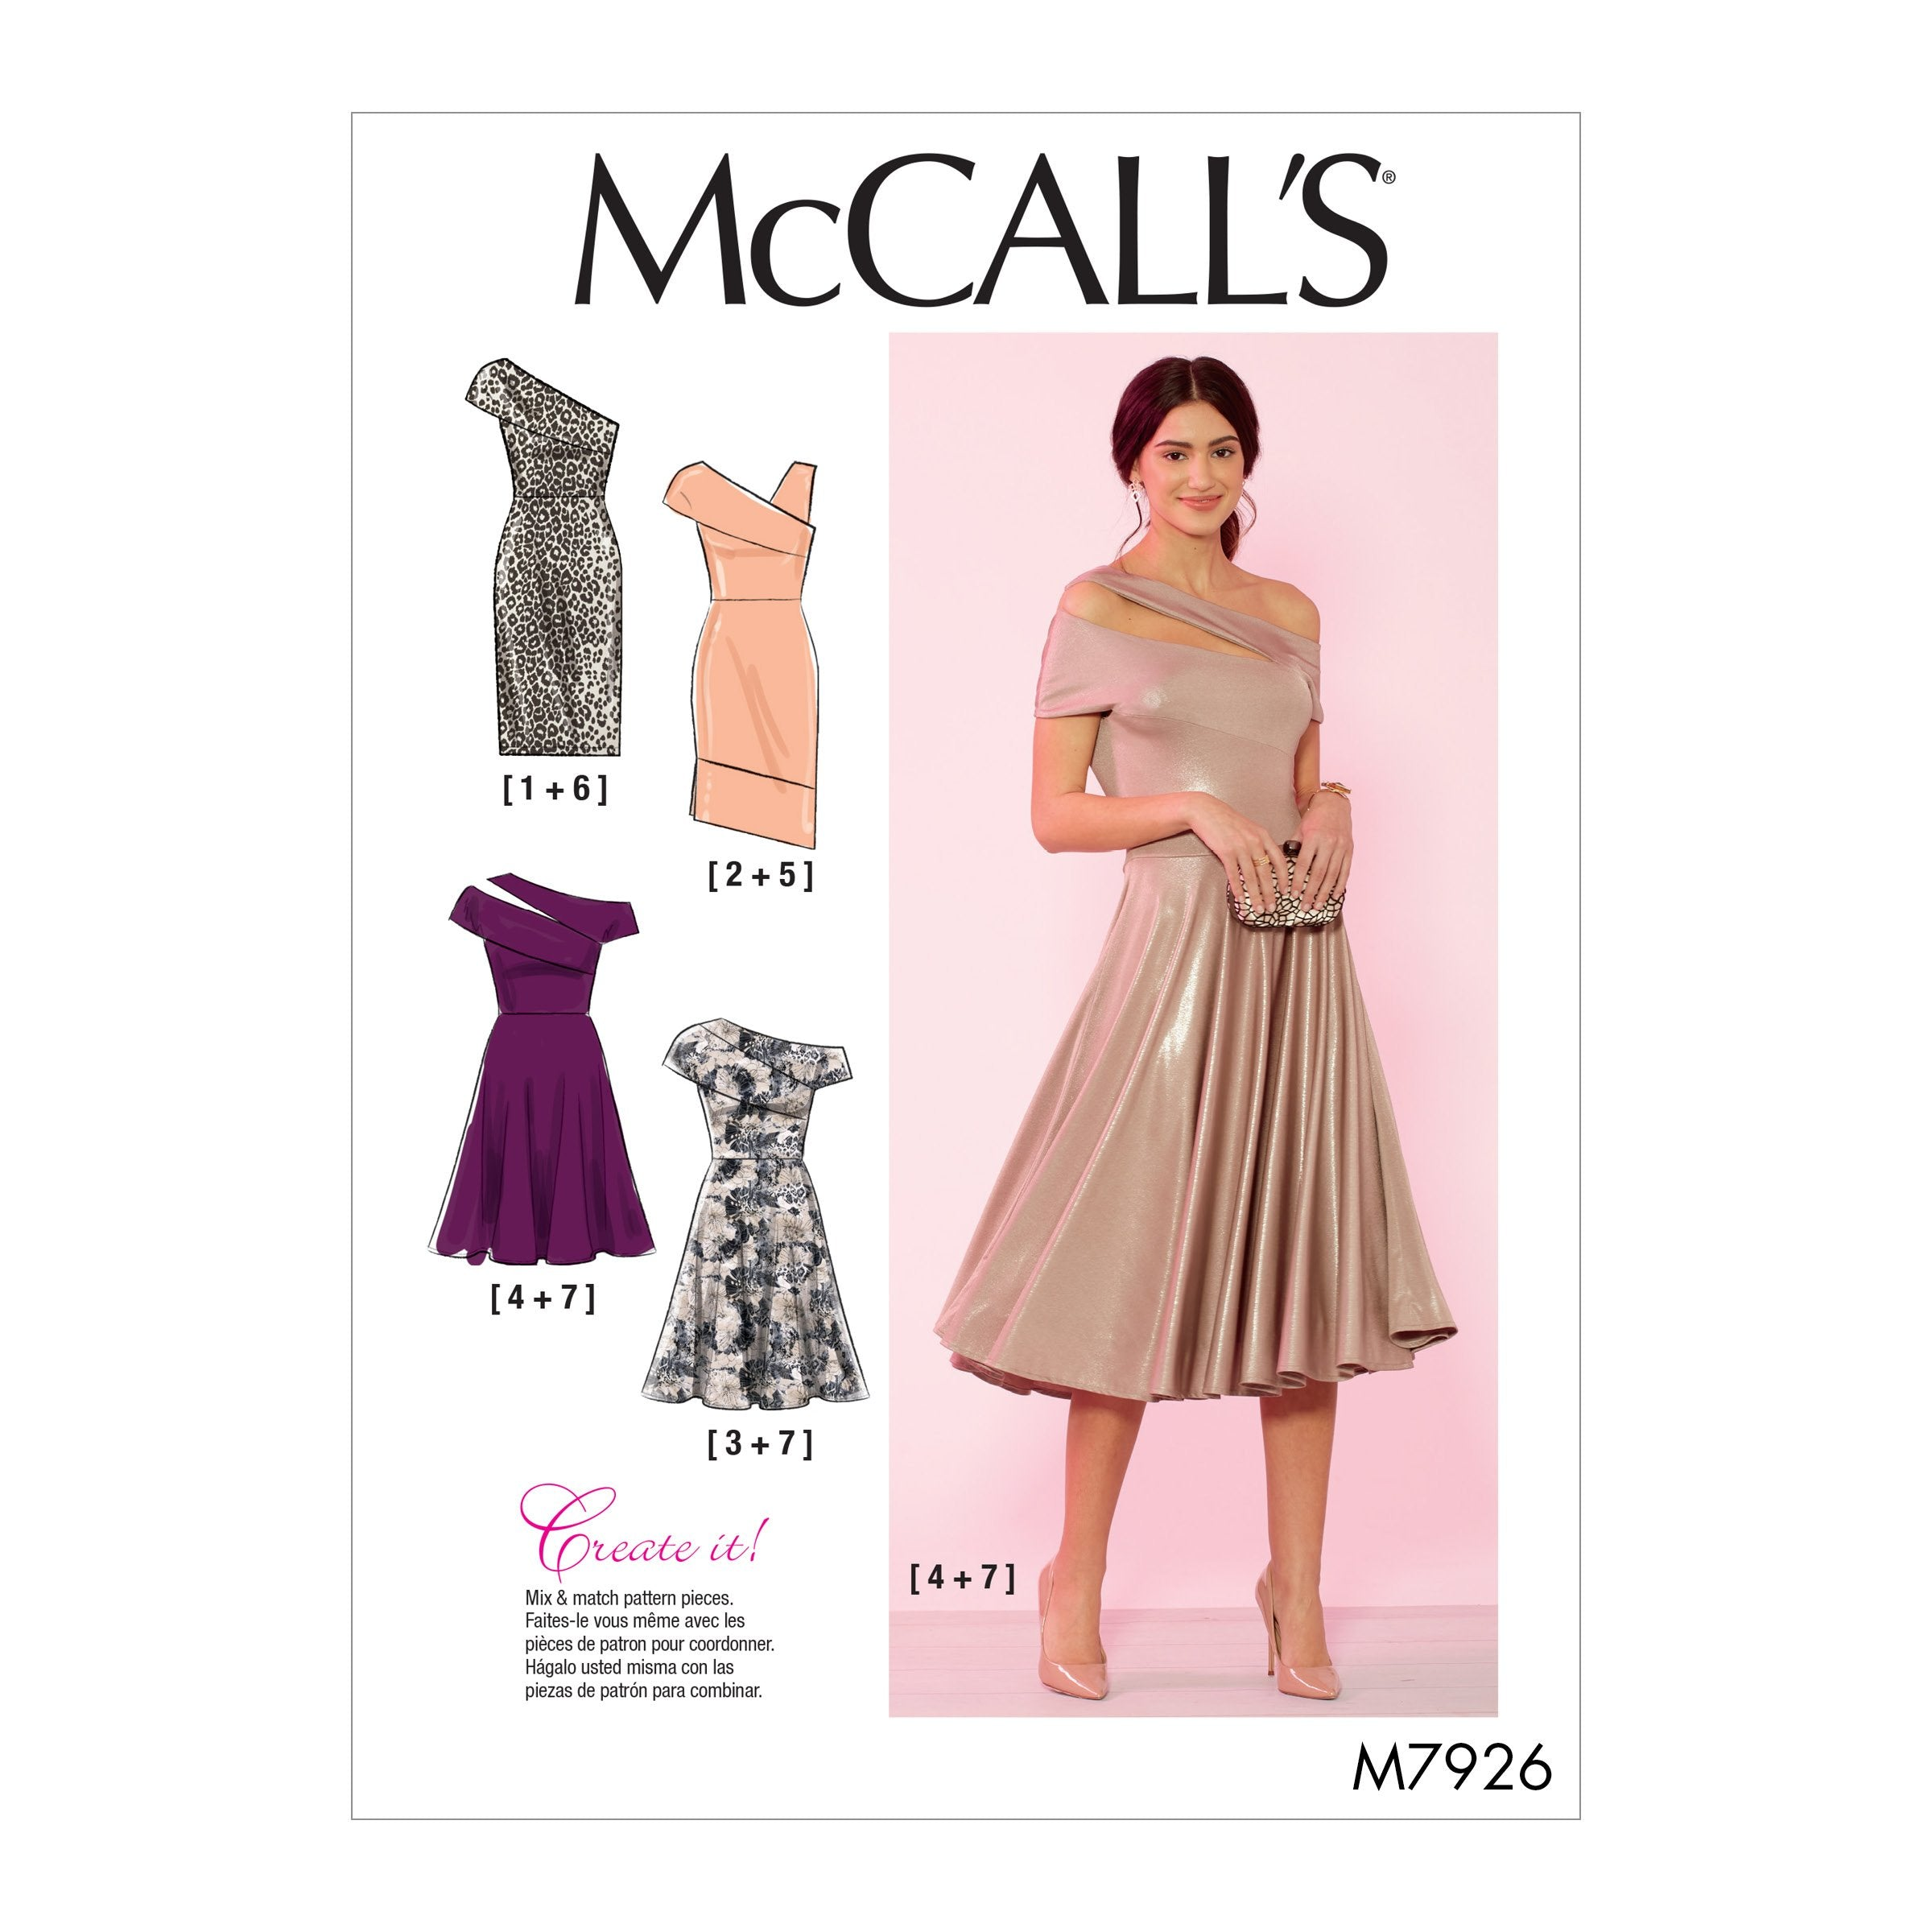 McCall's 7926 Special Occasion Dresses Pattern